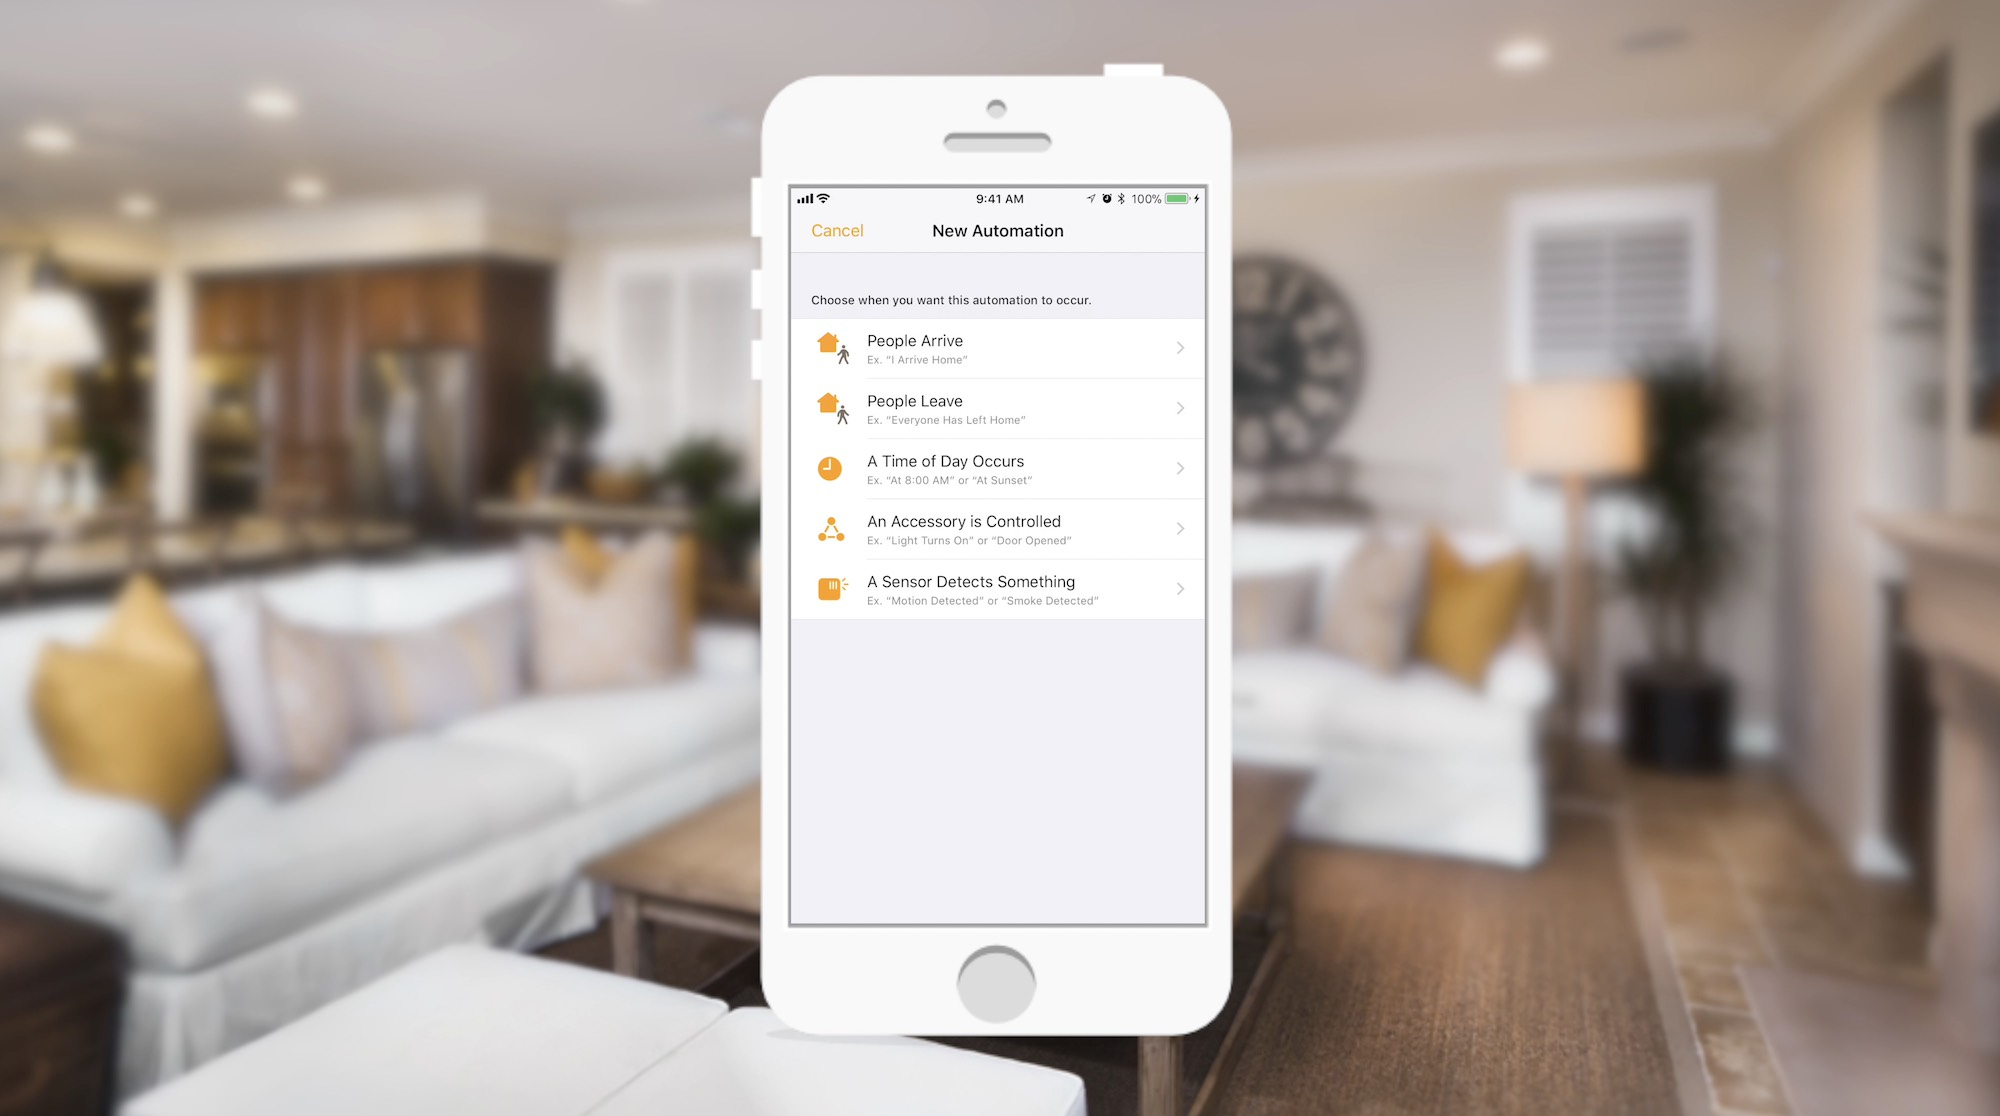 koogeek 39 s affordable homekit accessories are a great way to start your smart home. Black Bedroom Furniture Sets. Home Design Ideas